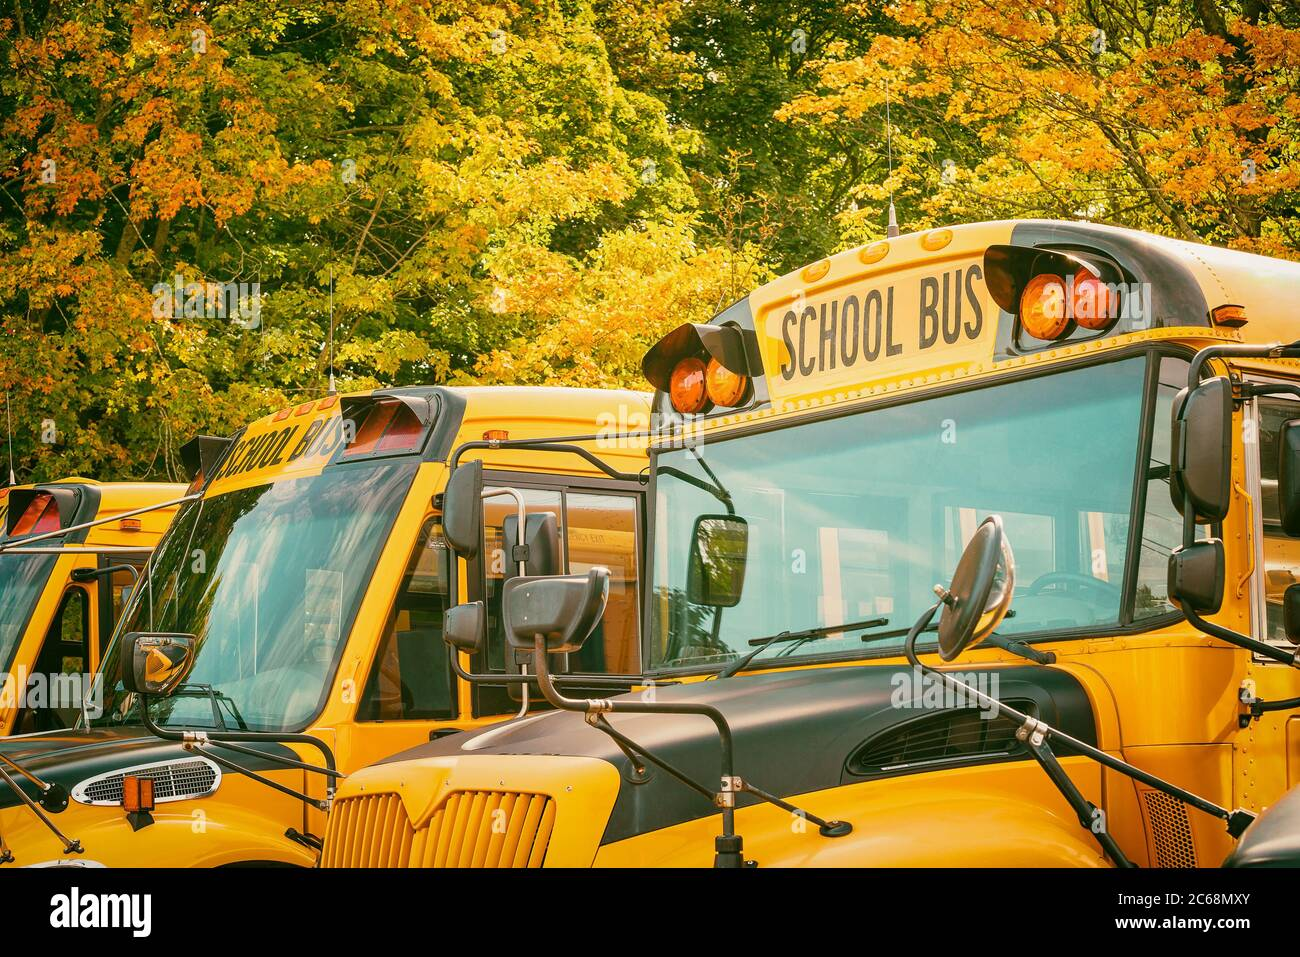 Yellow school buses in parking lot against beautiful autumn foliage trees. Back to school concept. Stock Photo